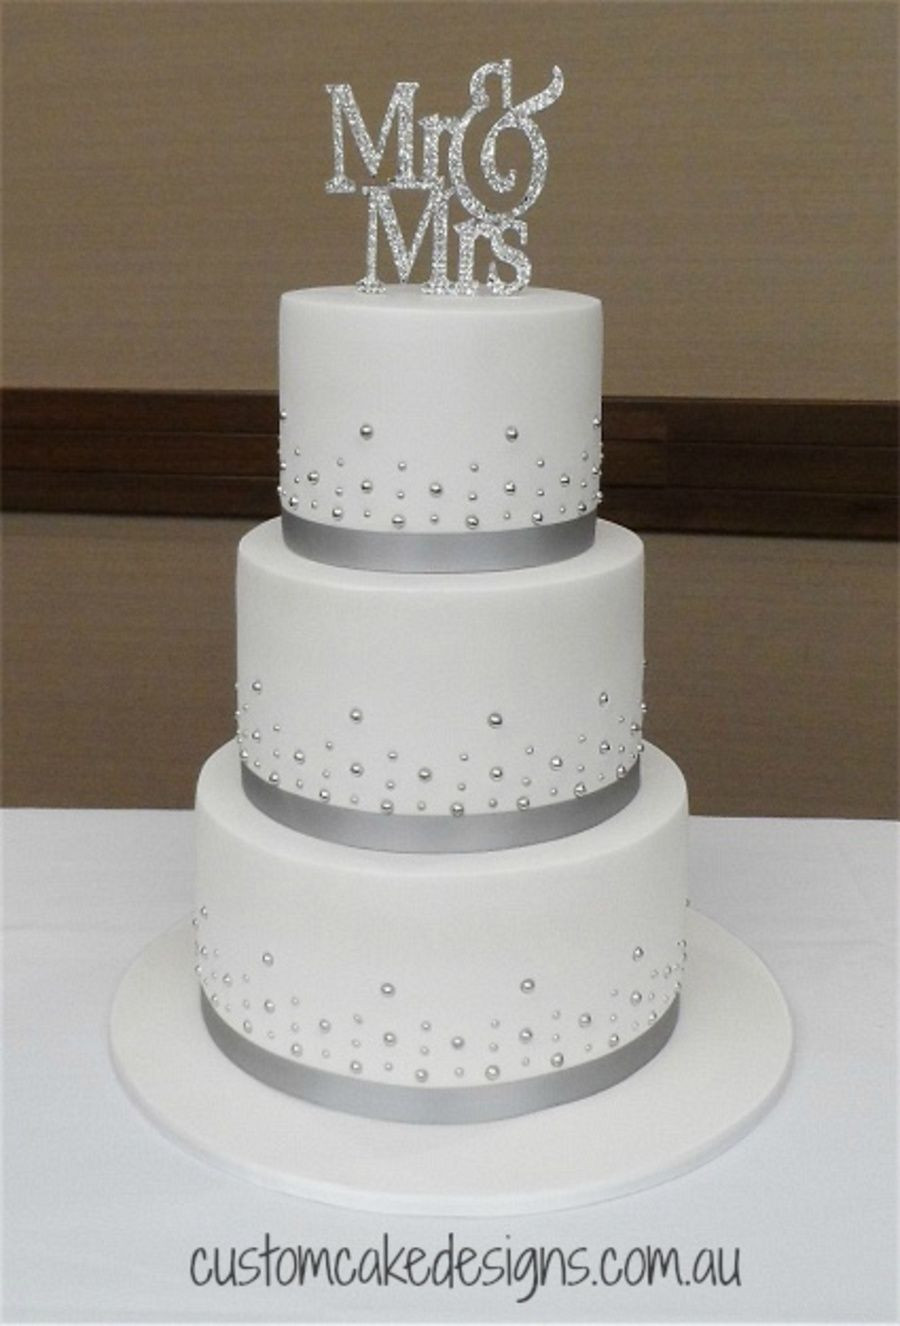 Wedding Cakes Designs Pictures  This elegant and simple design was chosen by the bride